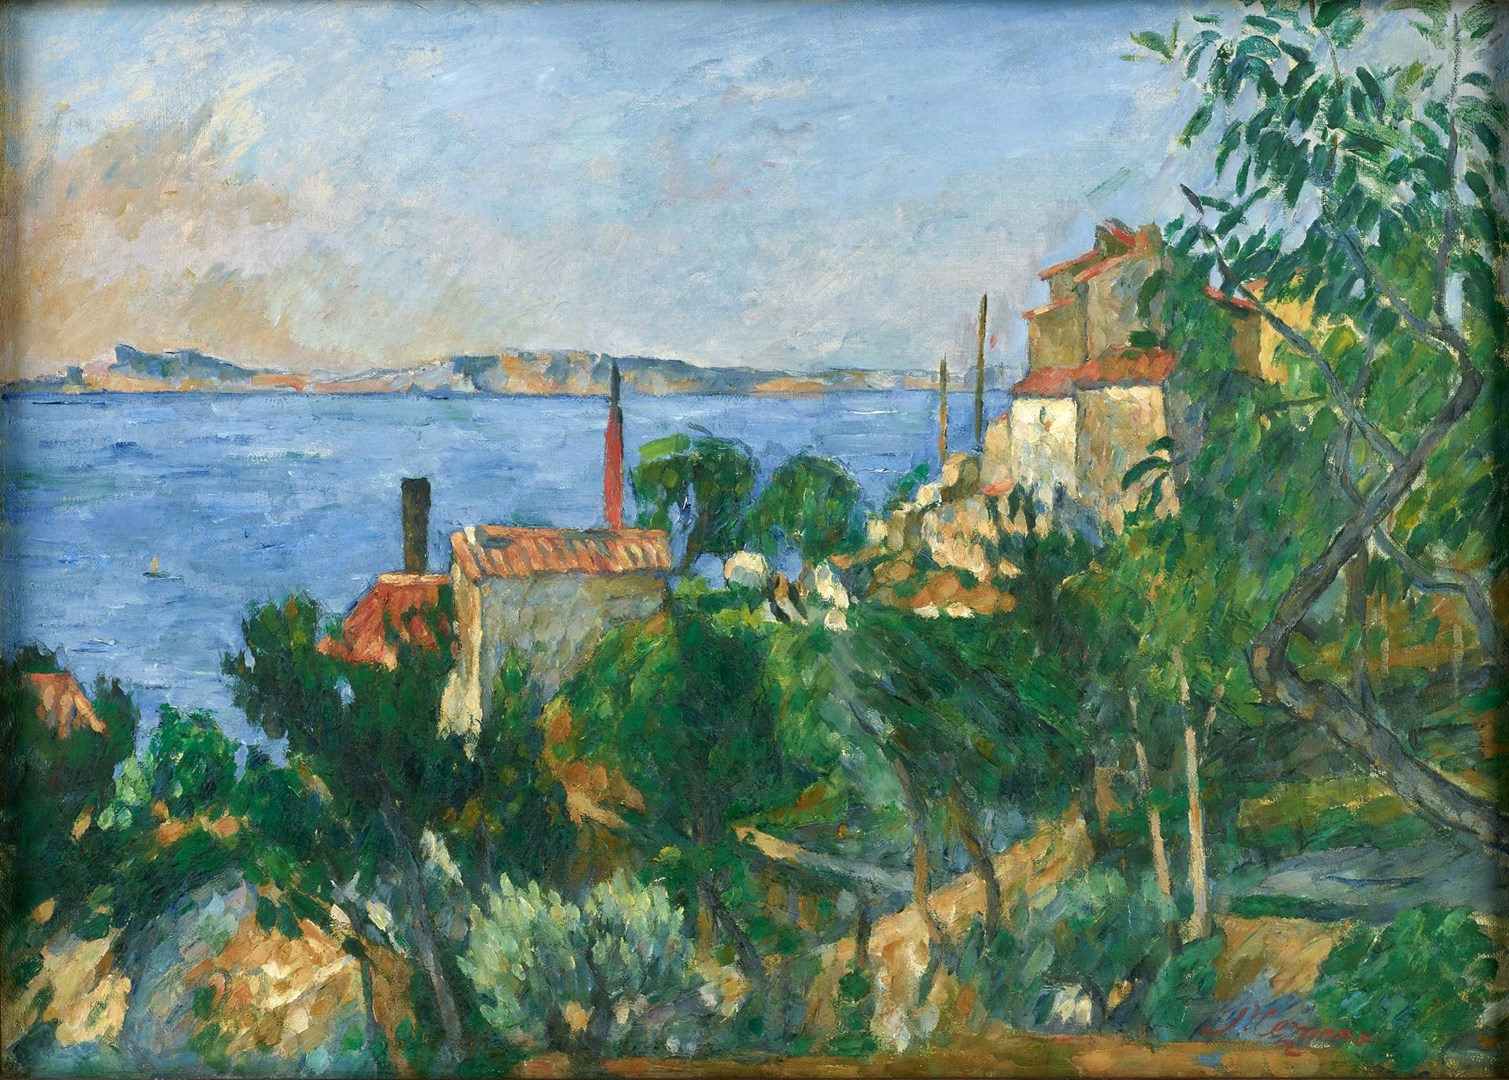 The Sea at L'Estaque by Paul Cézanne